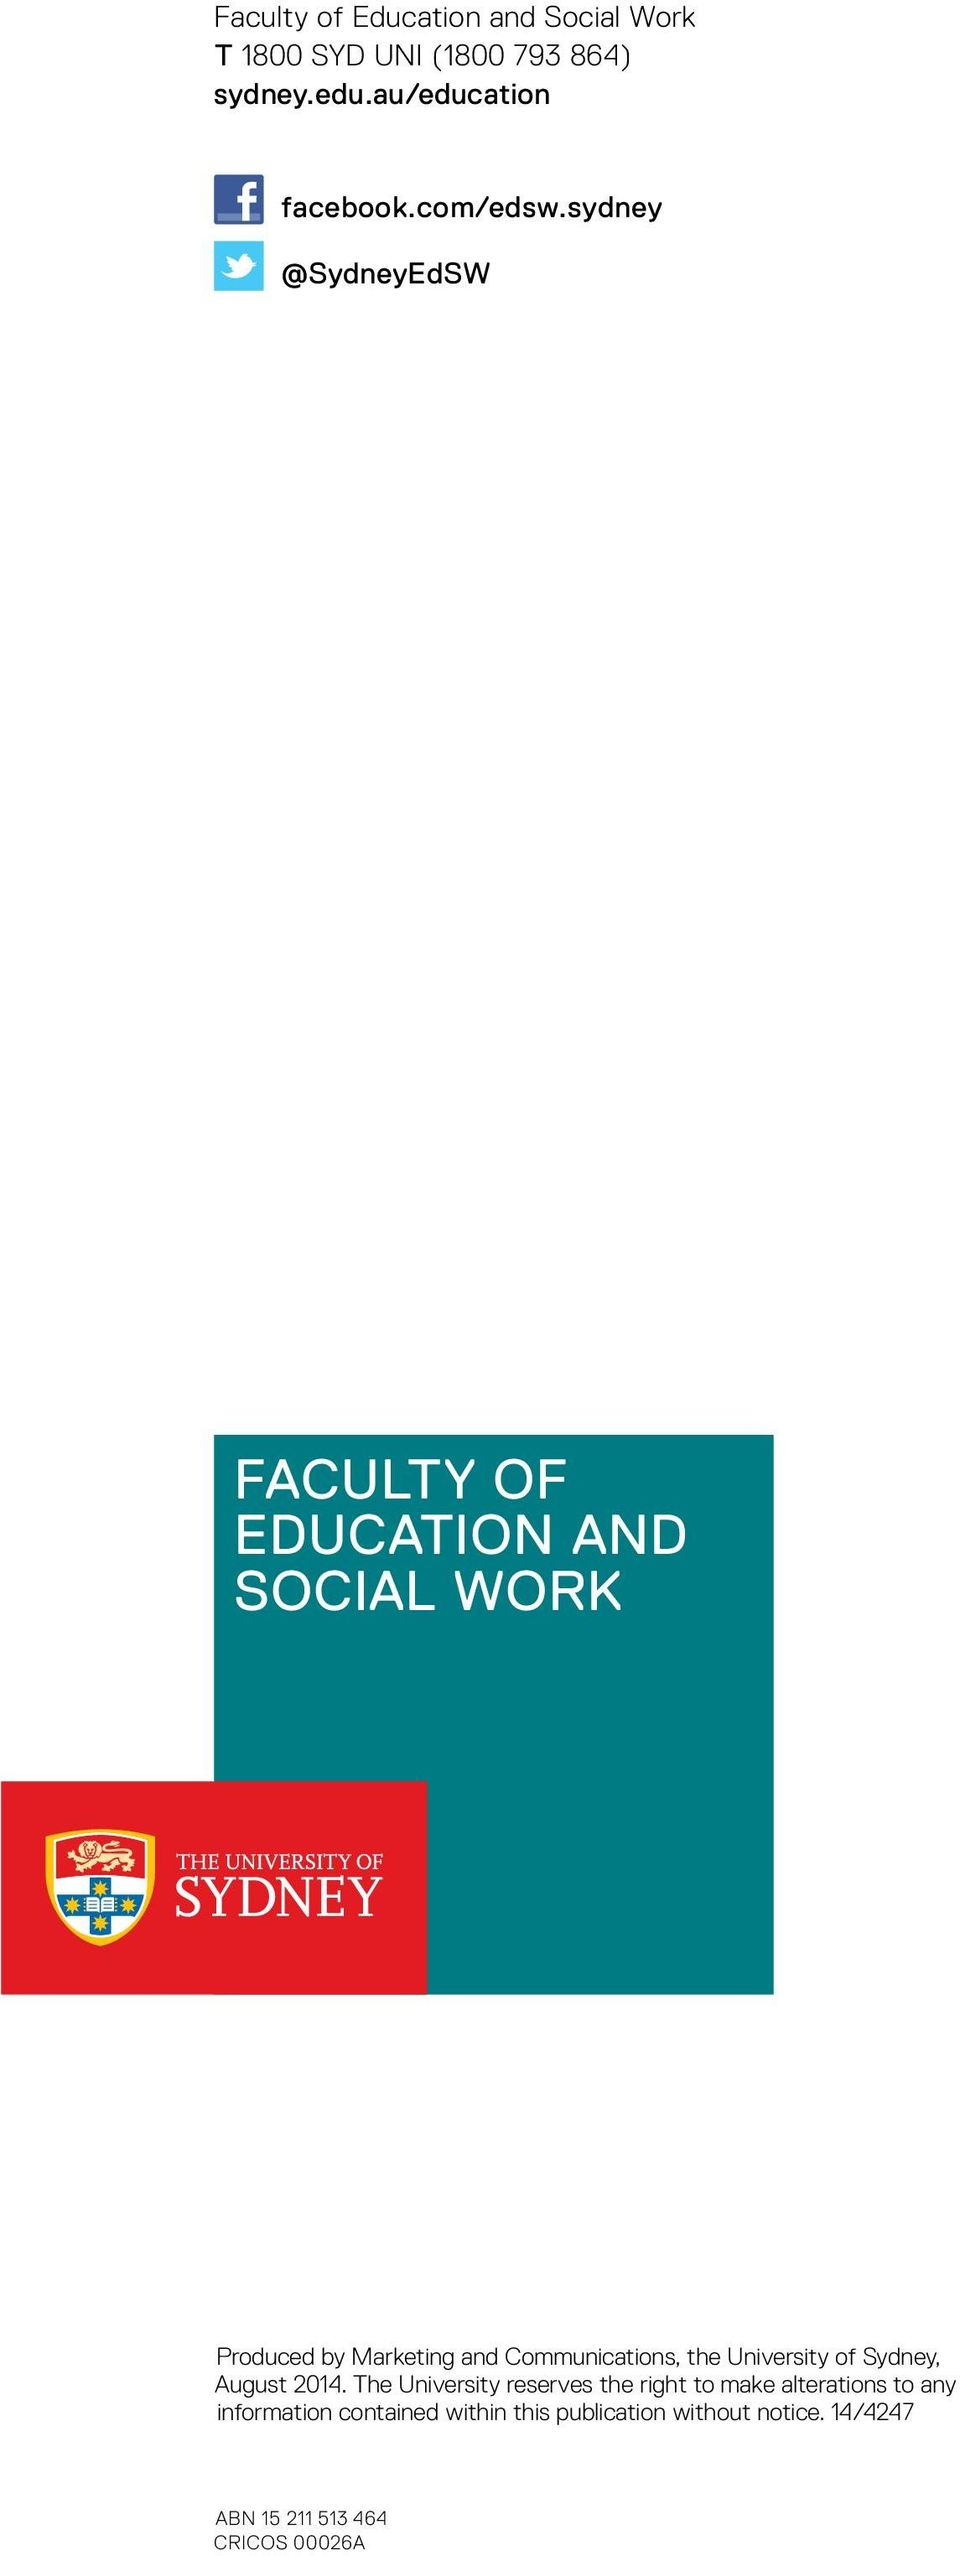 sydney @SydneyEdSW FACULTY OF EDUCATION AND SOCIAL WORK Produced by Marketing and Communications, the